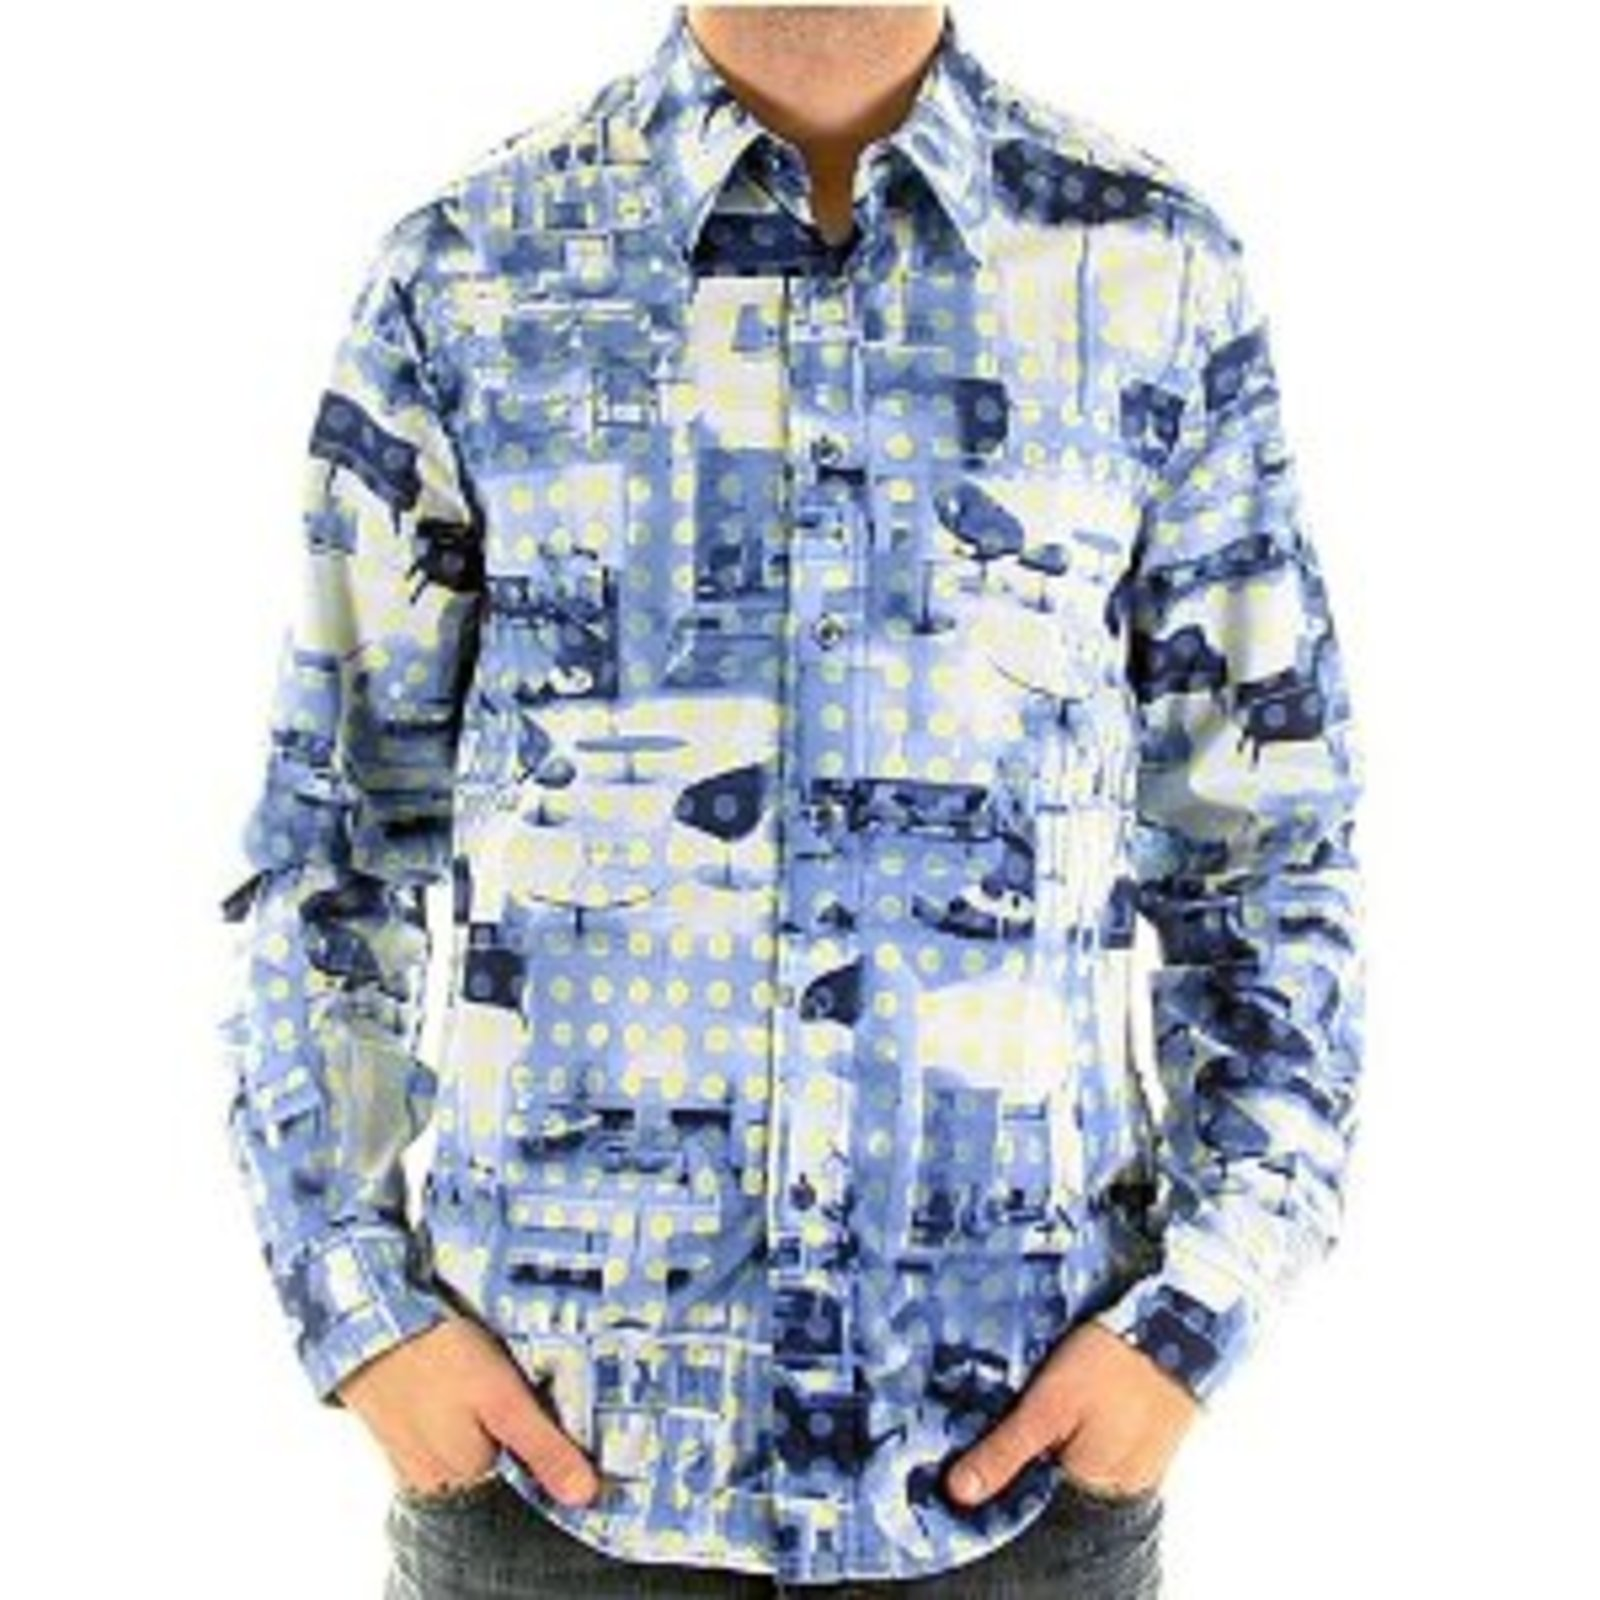 Moschino Shirt Mens Long Sleeve Printed Shirt Mosm3832 At